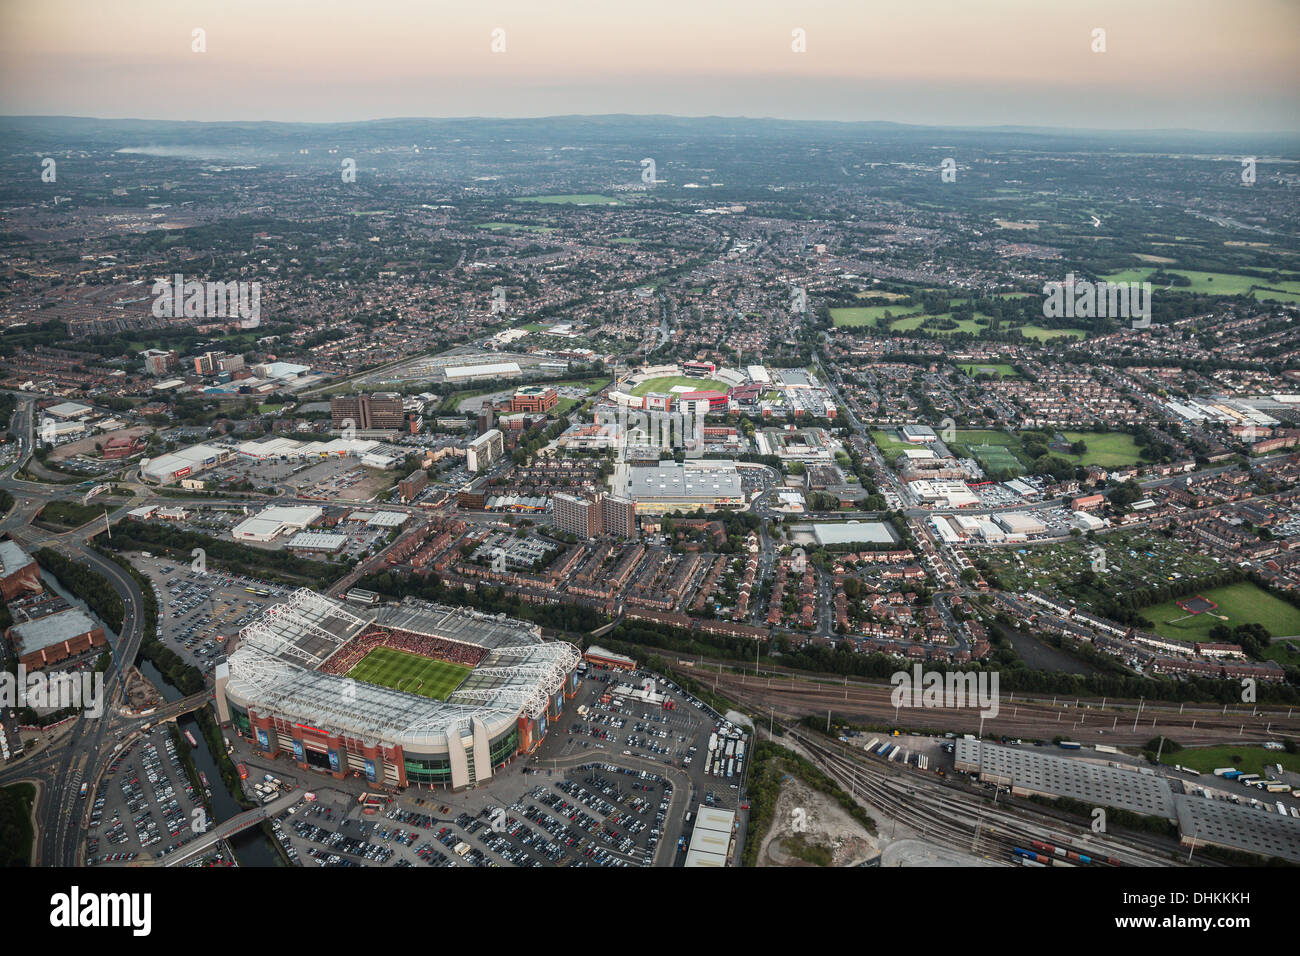 Twilight aerial view over Manchester with Old Trafford Football and Cricket Ground in the foreground. - Stock Image